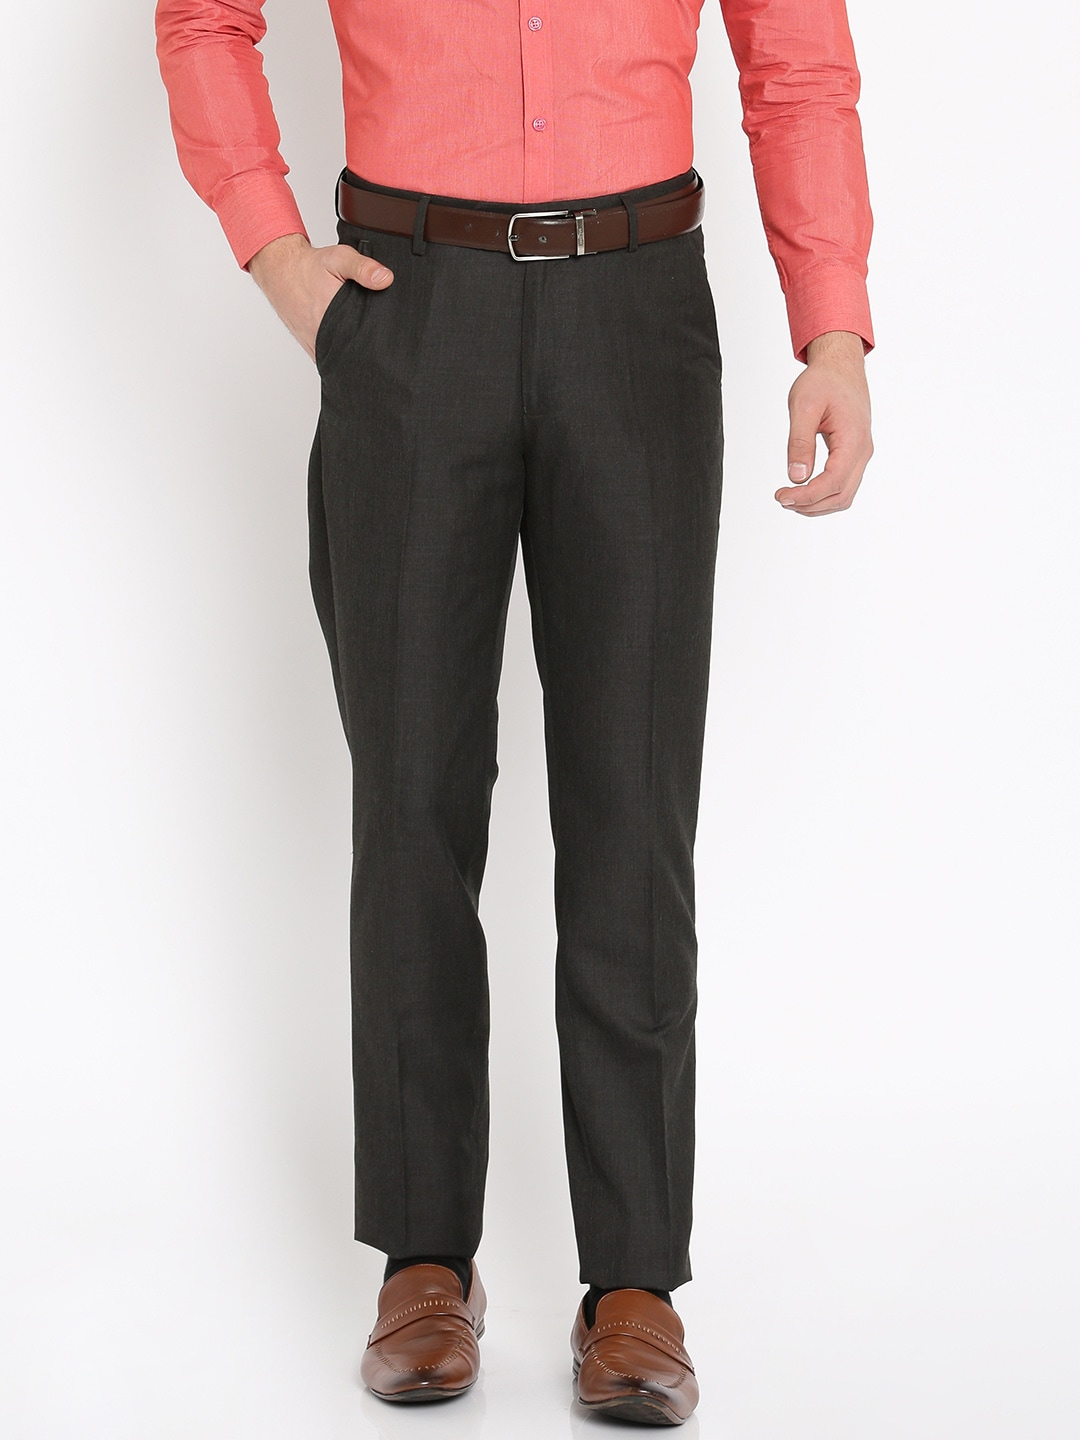 Peter England Men Charcoal Grey Slim Fit Solid Formal Trousers image